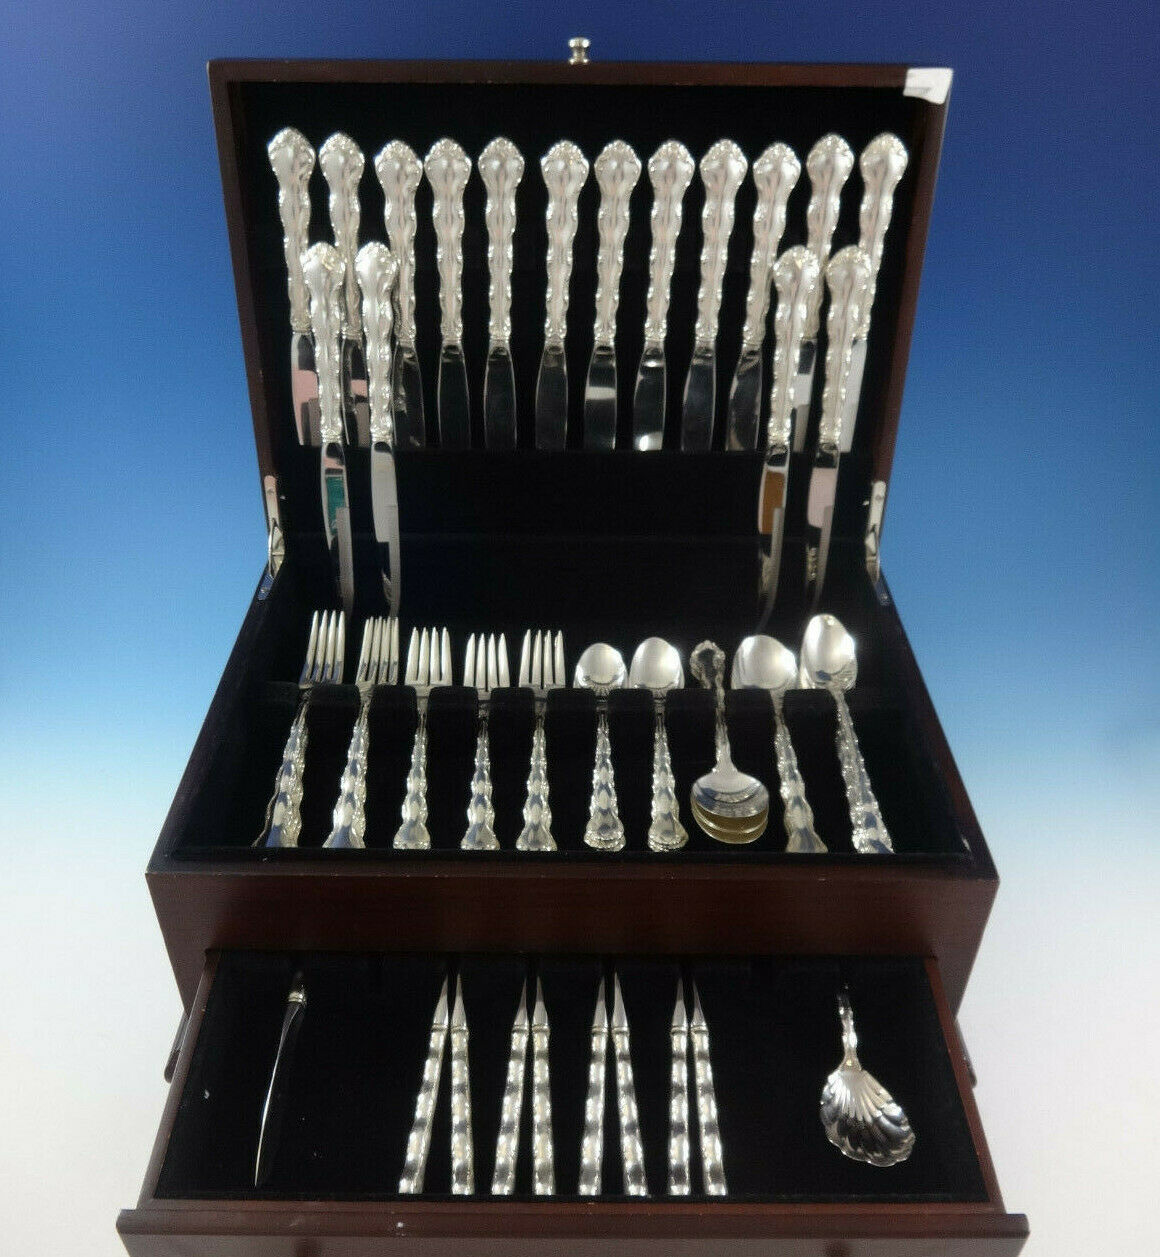 Primary image for Tara by Reed and Barton Sterling Silver Flatware Set For 8 Service 66 Pieces